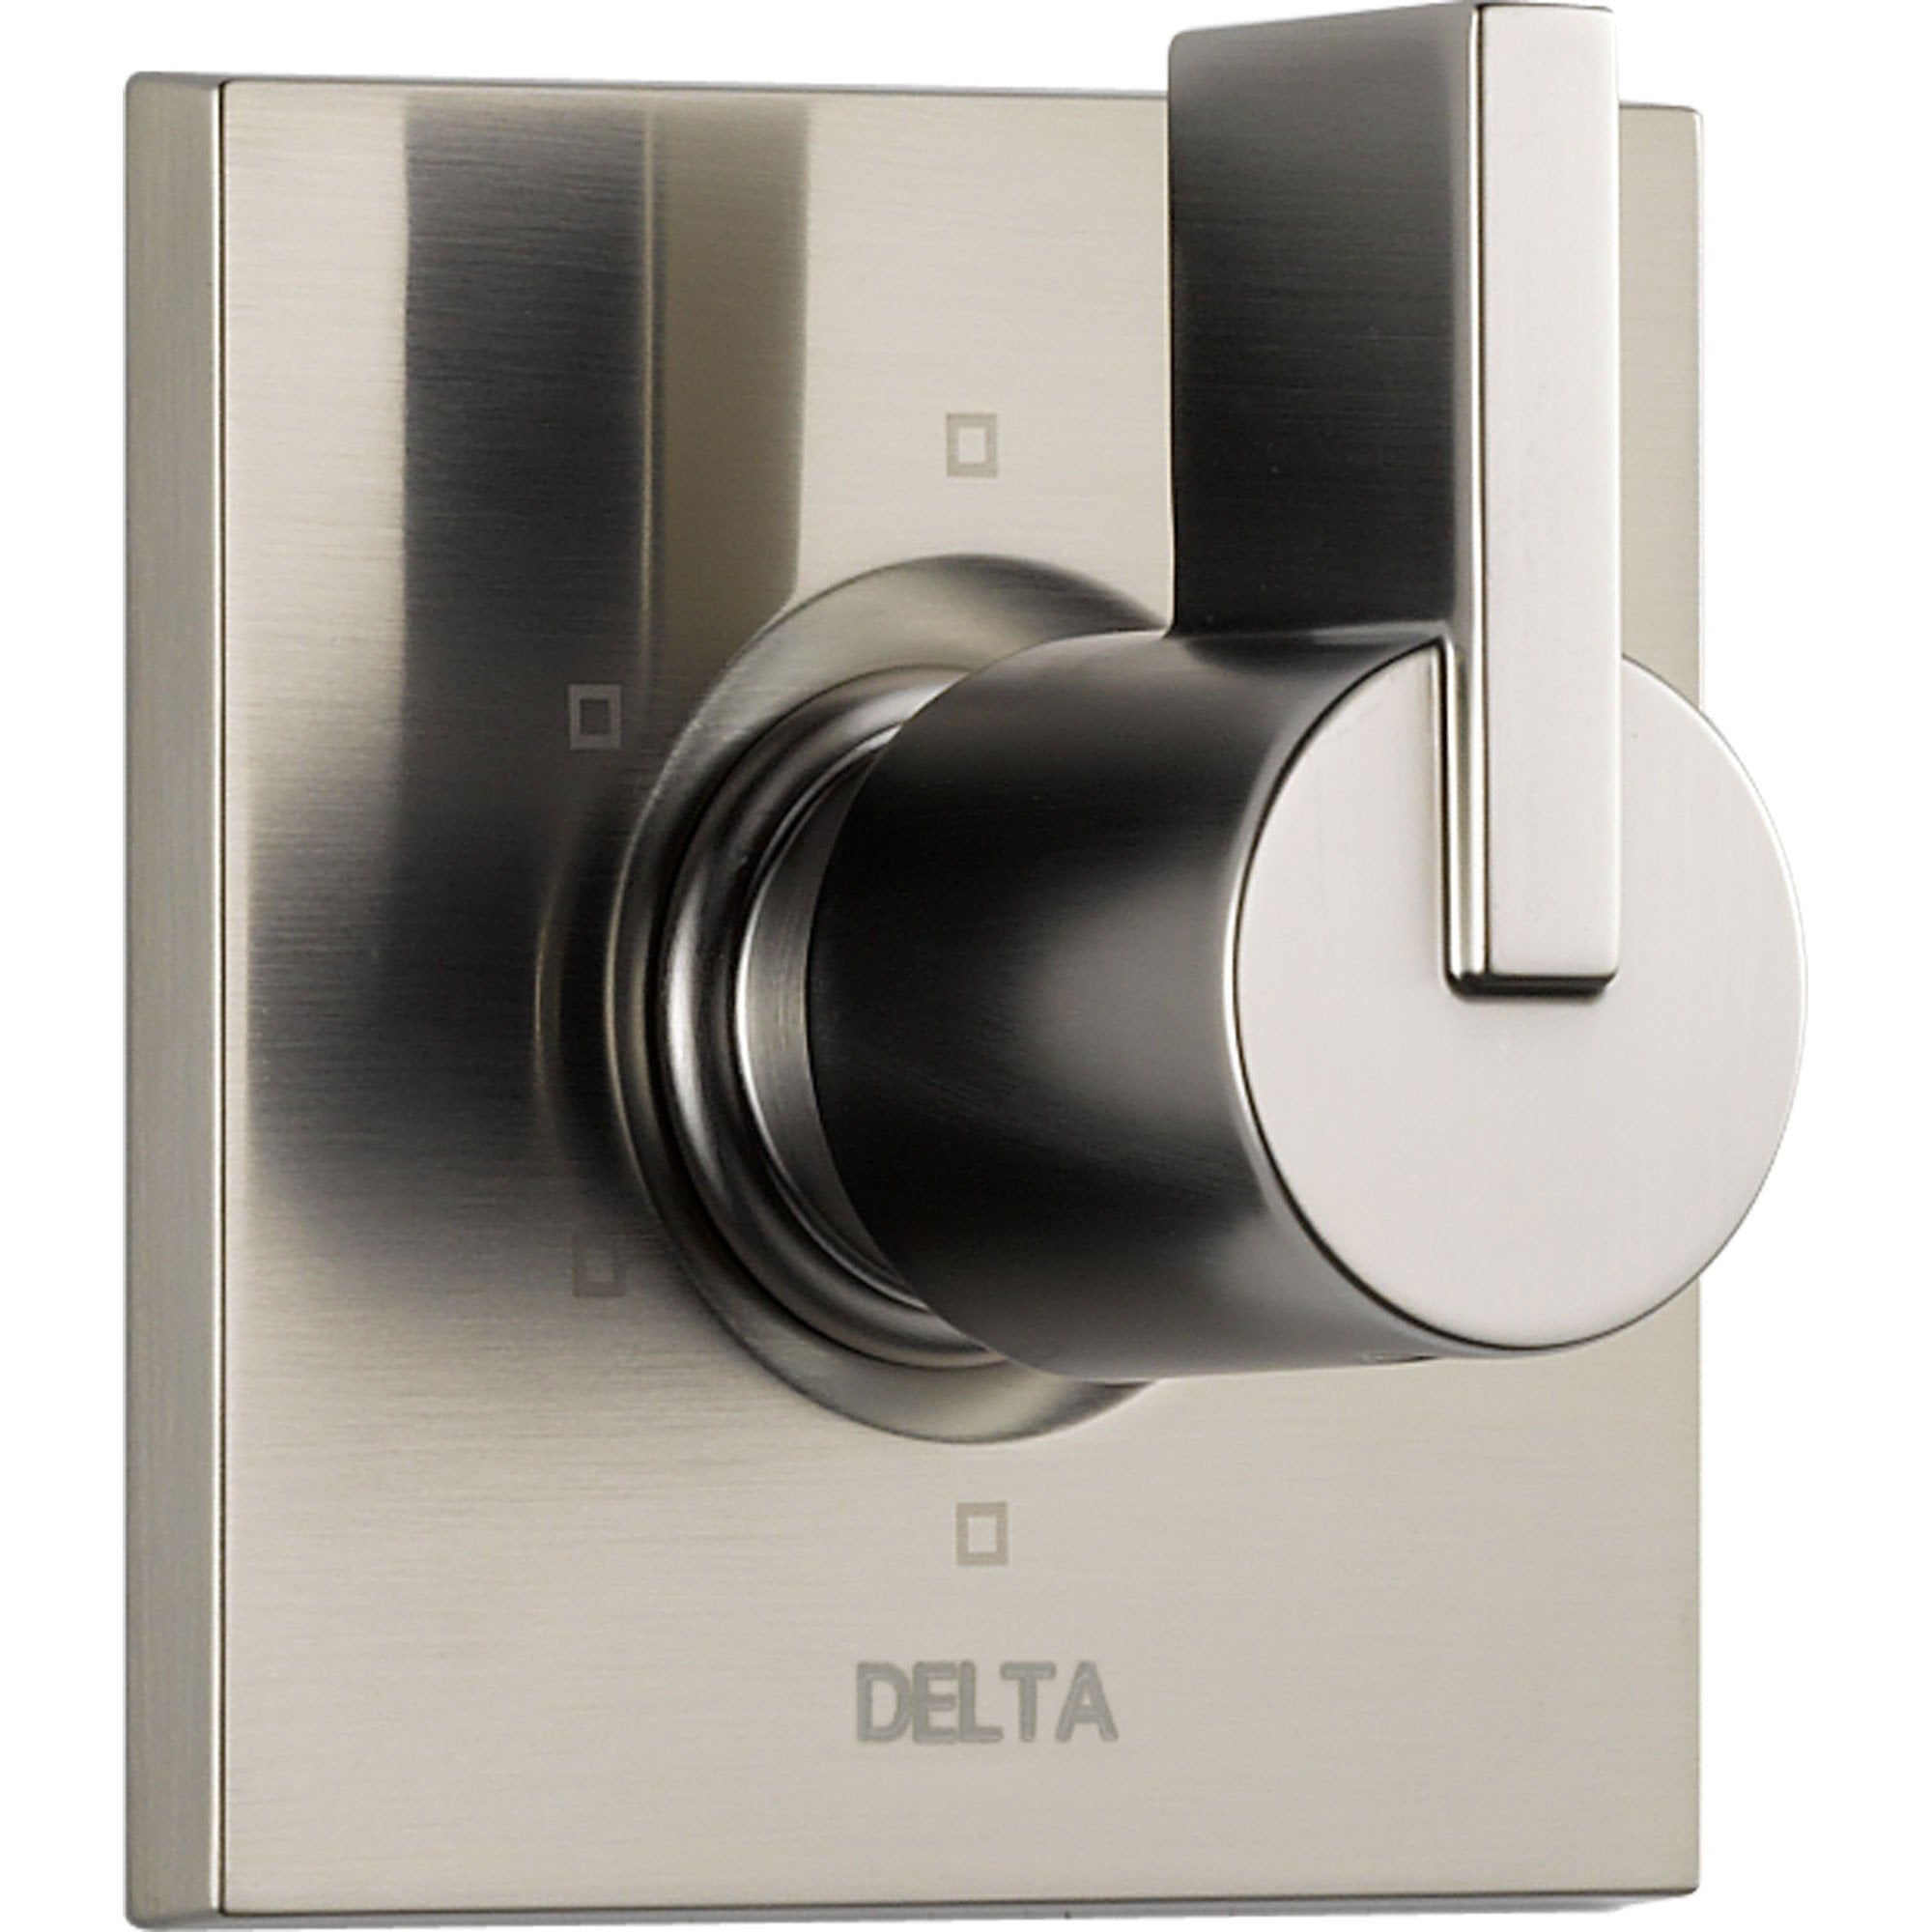 Delta Vero 6-Setting Stainless Steel Finish 1-Handle Shower Diverter Trim 521918